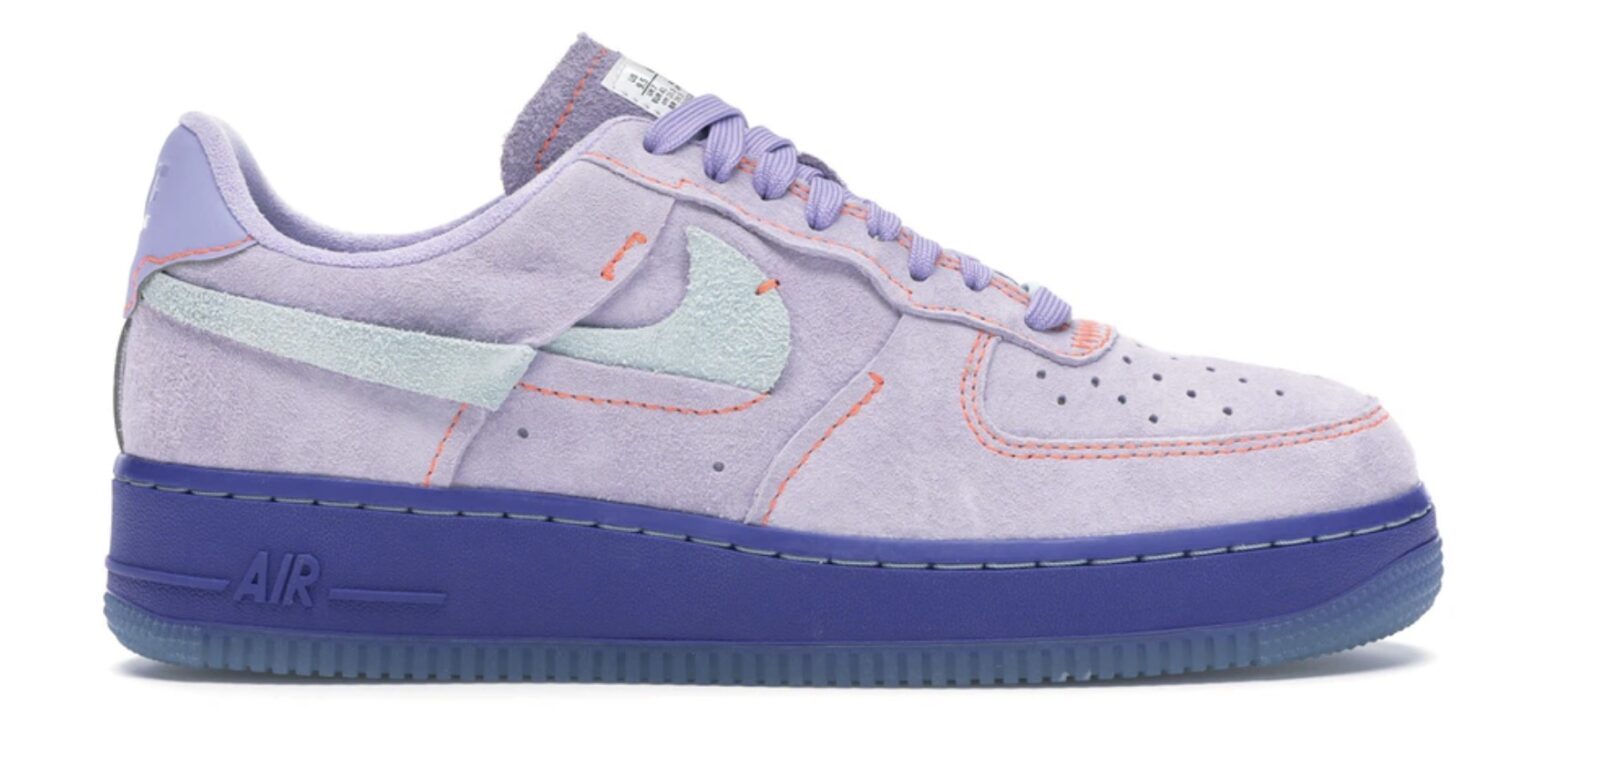 Nike Air Force 1 LX Purple Agate